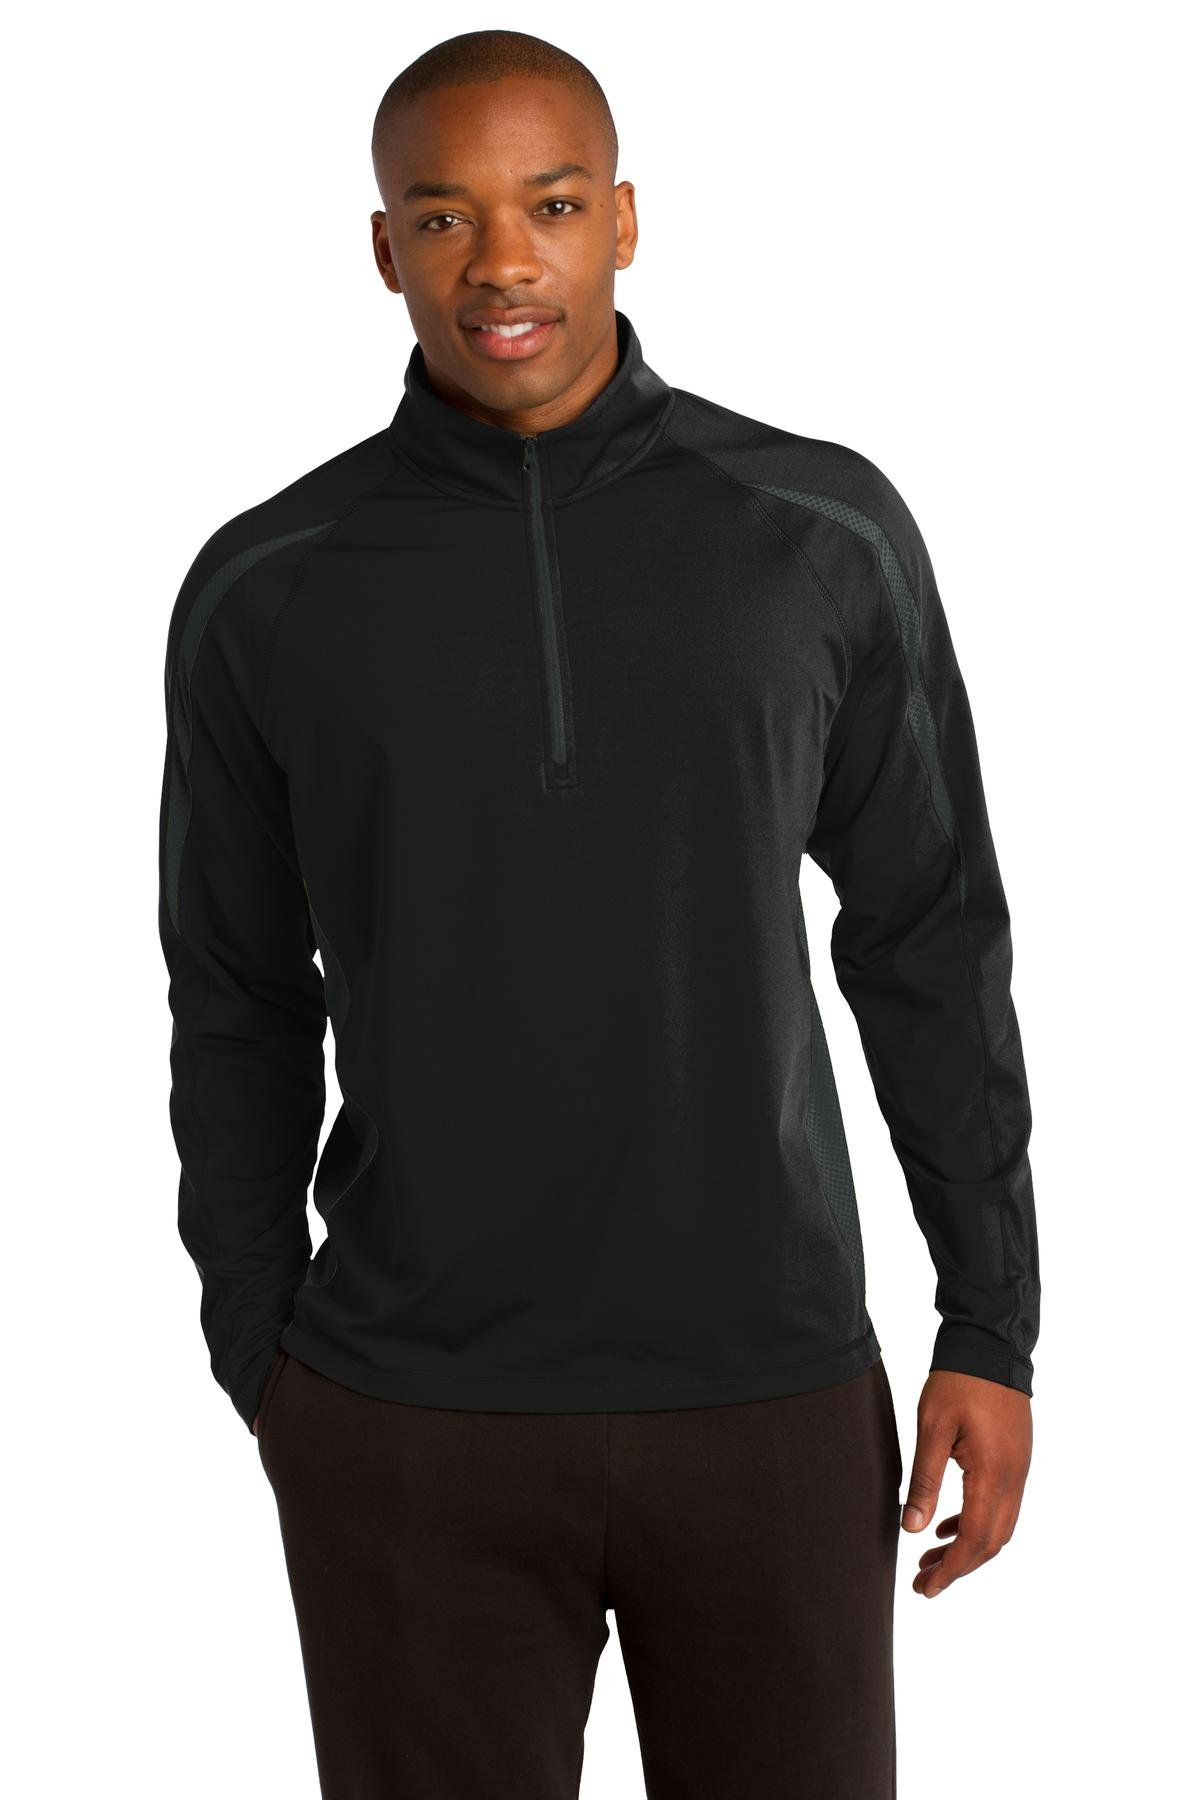 Sport-Tek Men's Sport Wick Stretch 1/2 Zip Colorblock L Black/Charcoal Grey by Sport-Tek